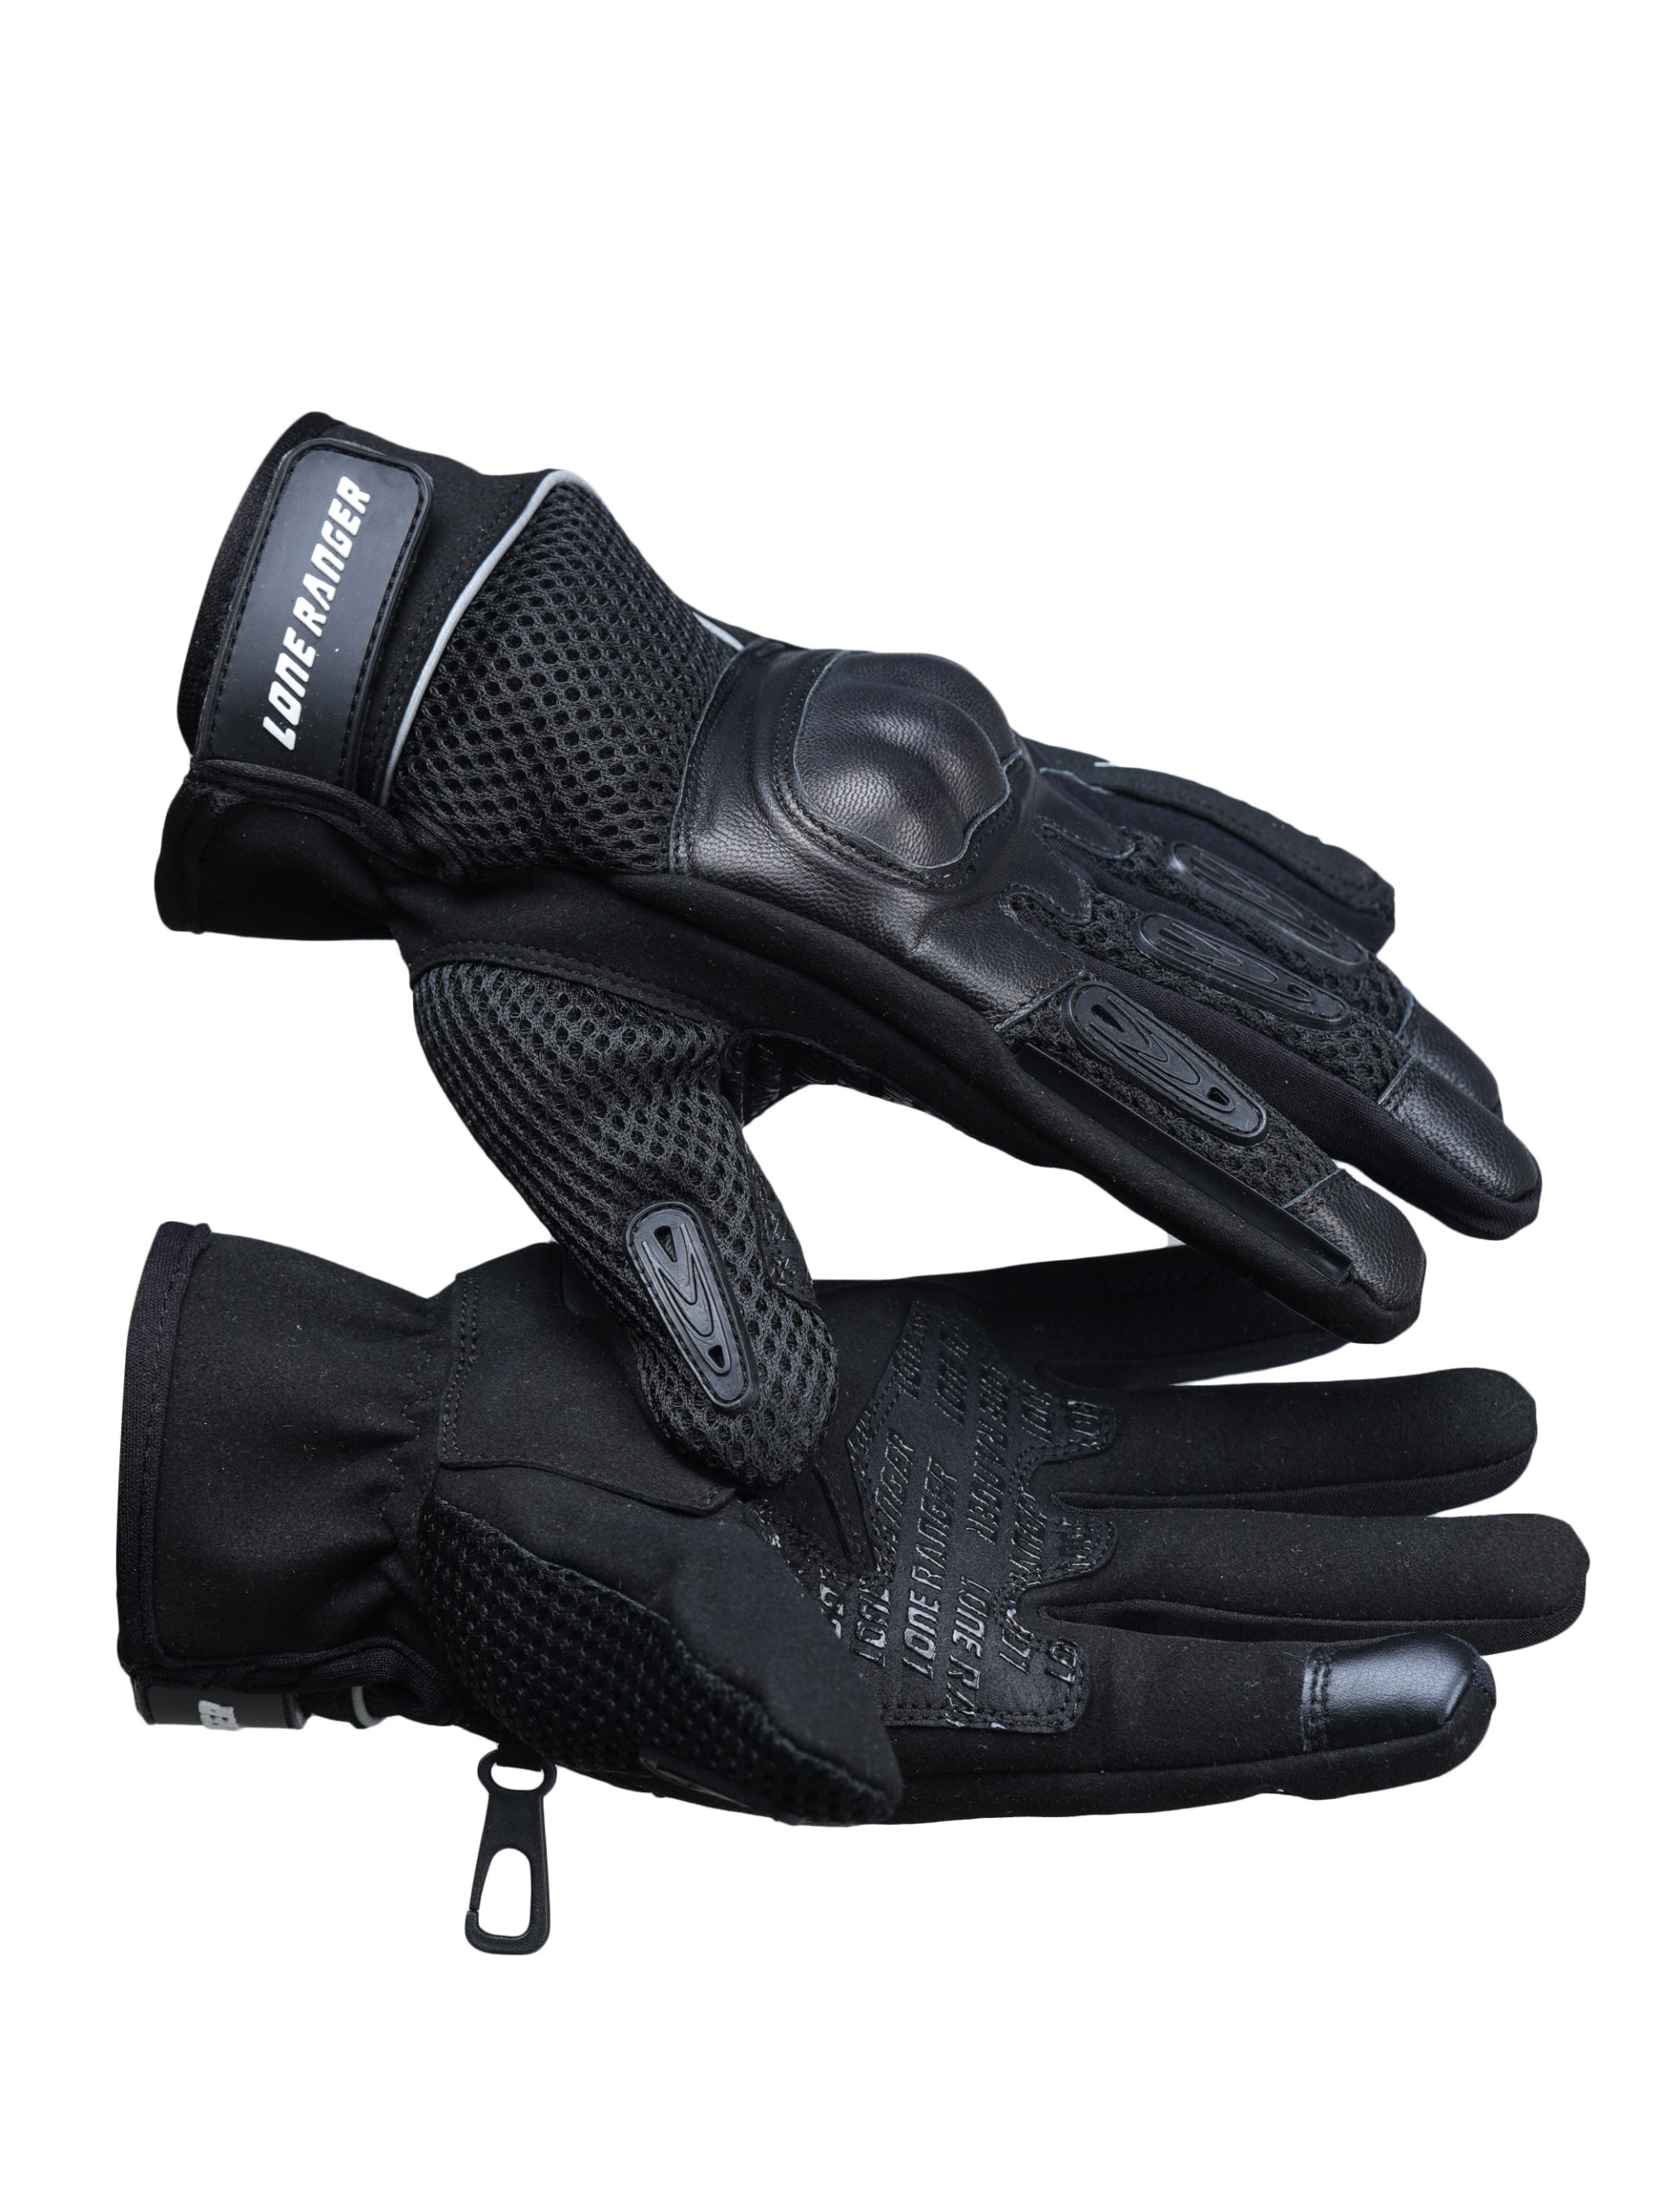 royald140fe_air-x-gloves-black5